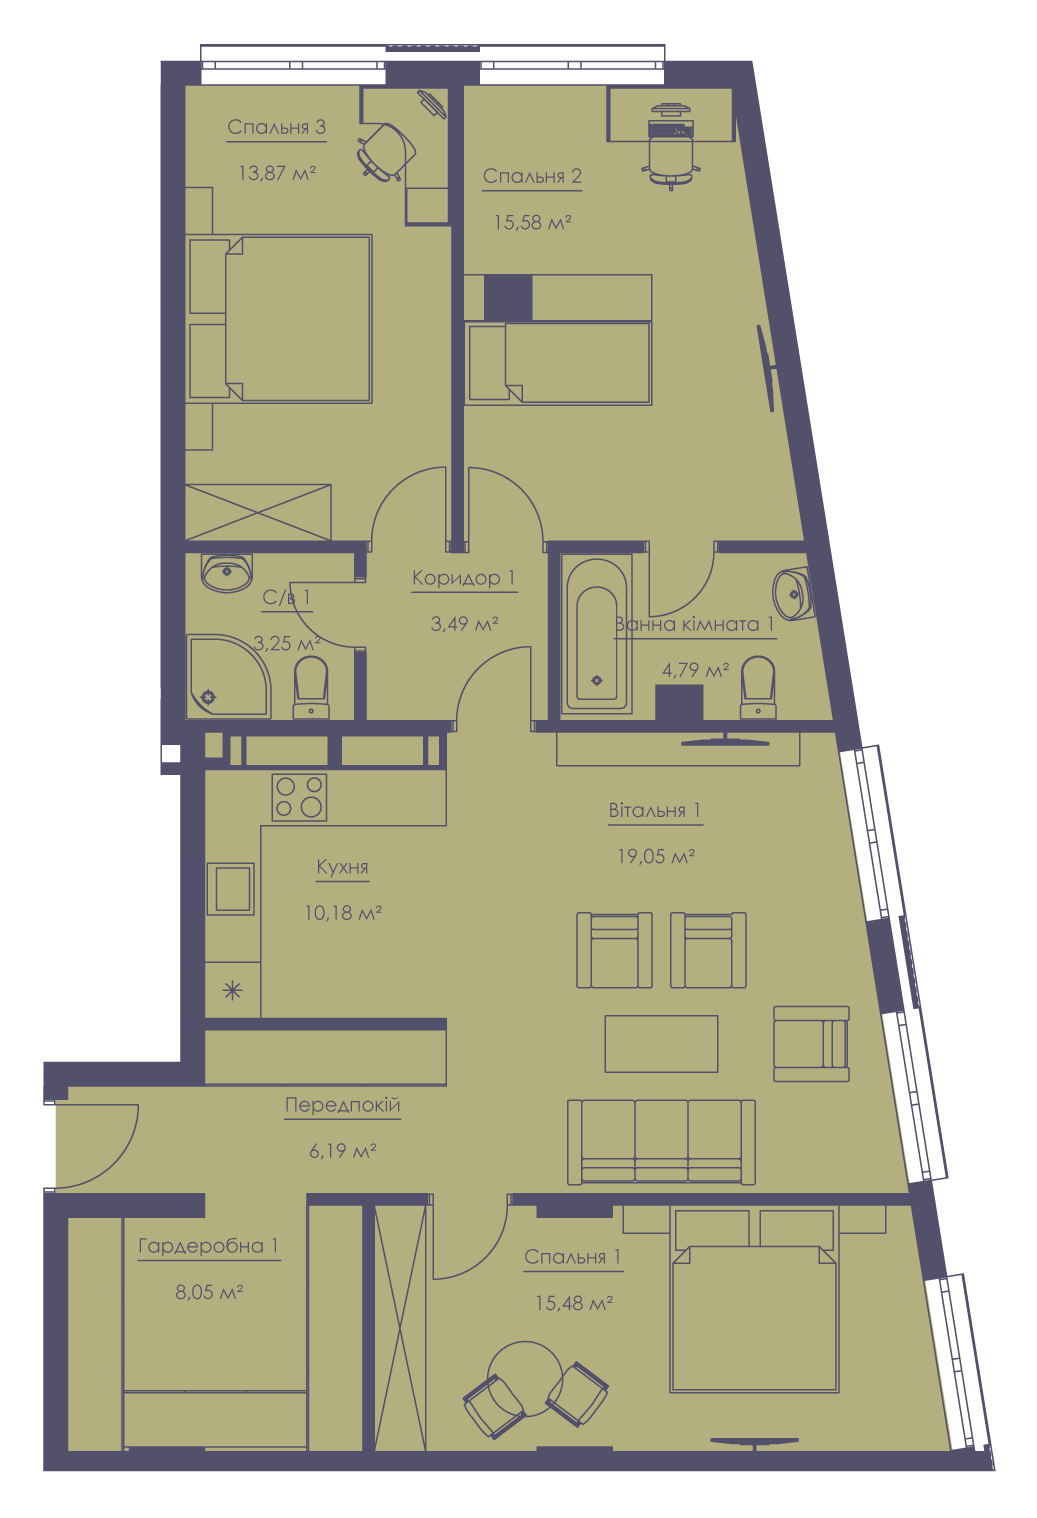 Apartment layout KV_36_2.4g_1_1_11-1